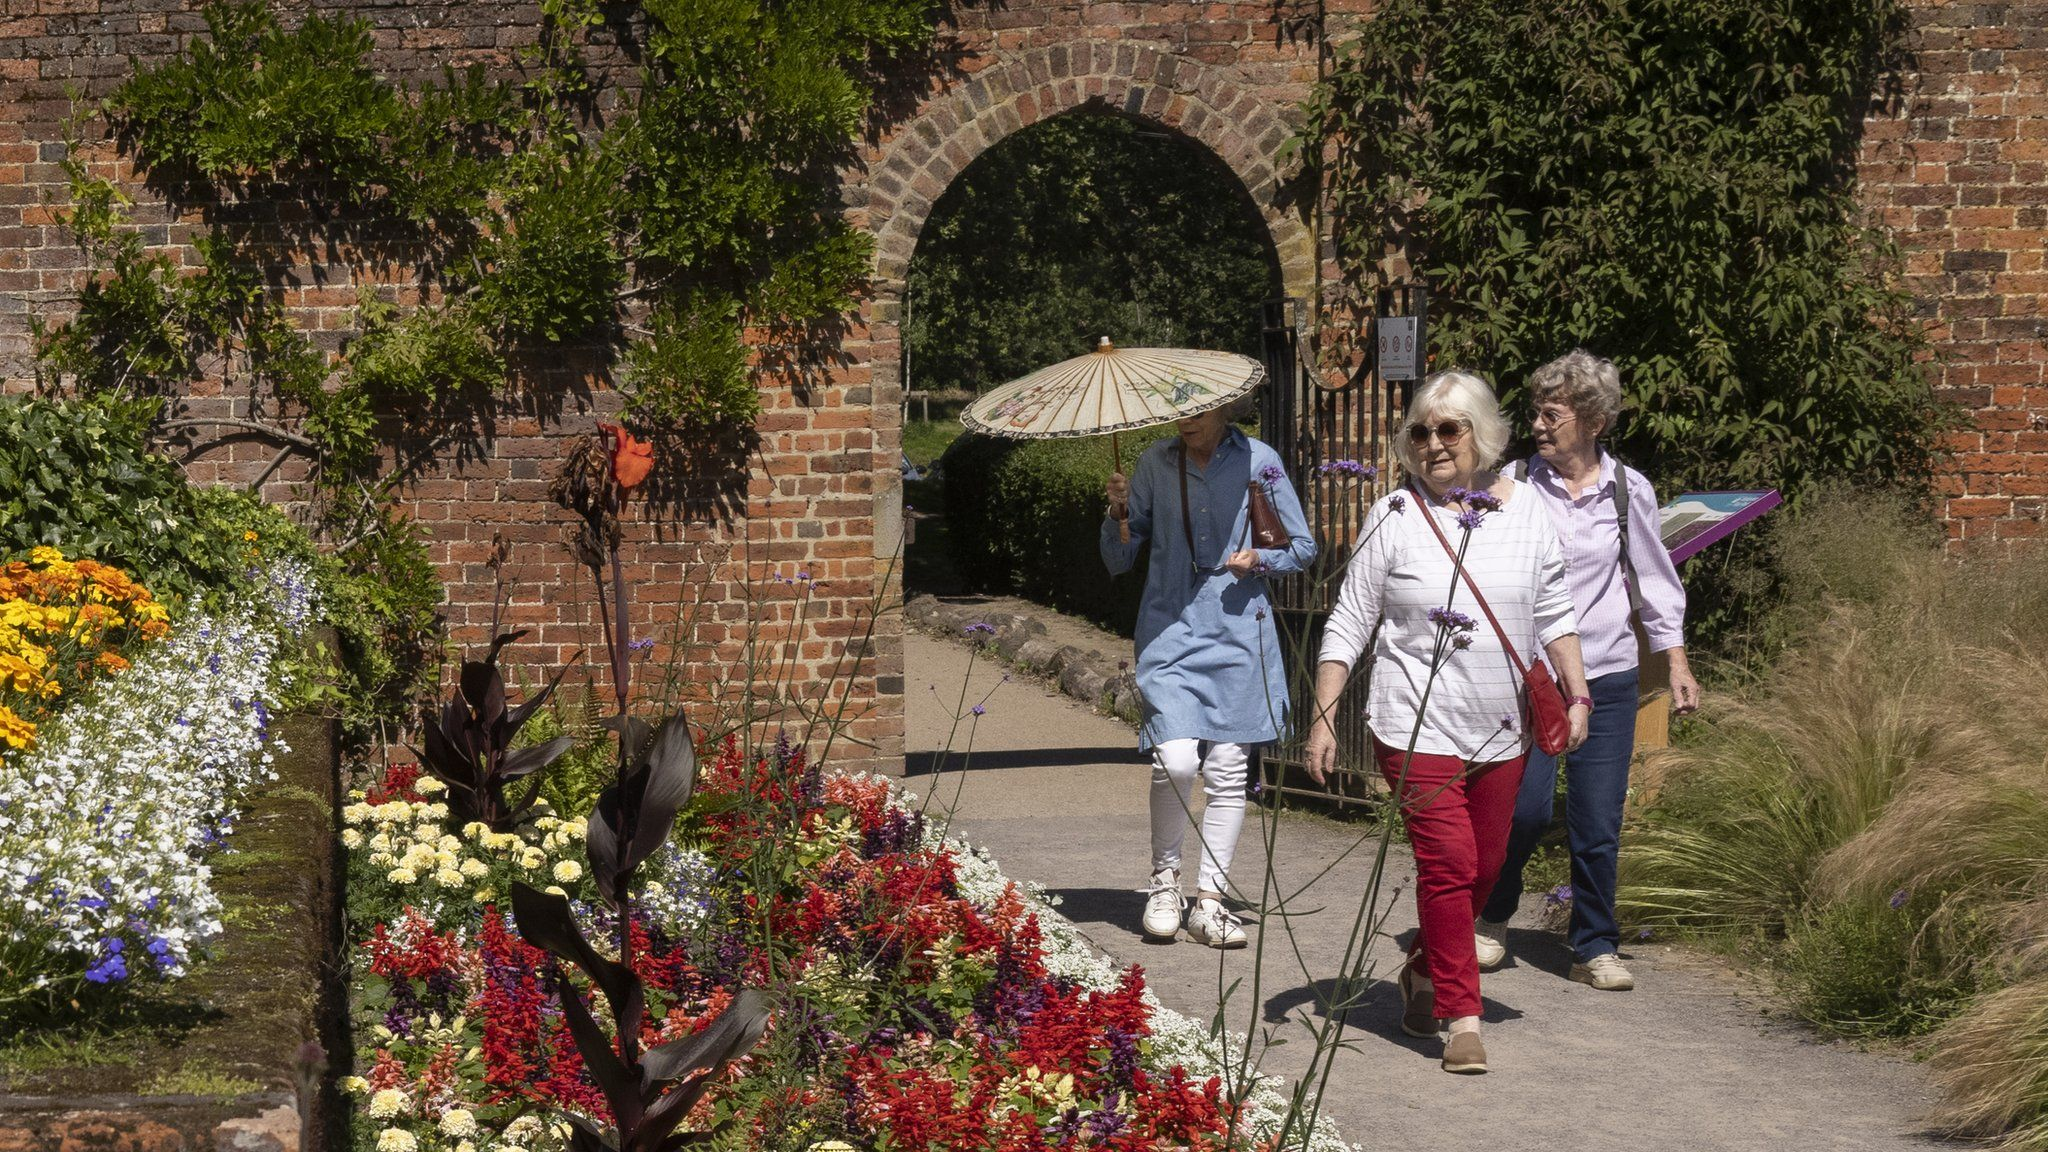 An elderly group walk along the herbaceous border in the gardens at Beckenham Place Park